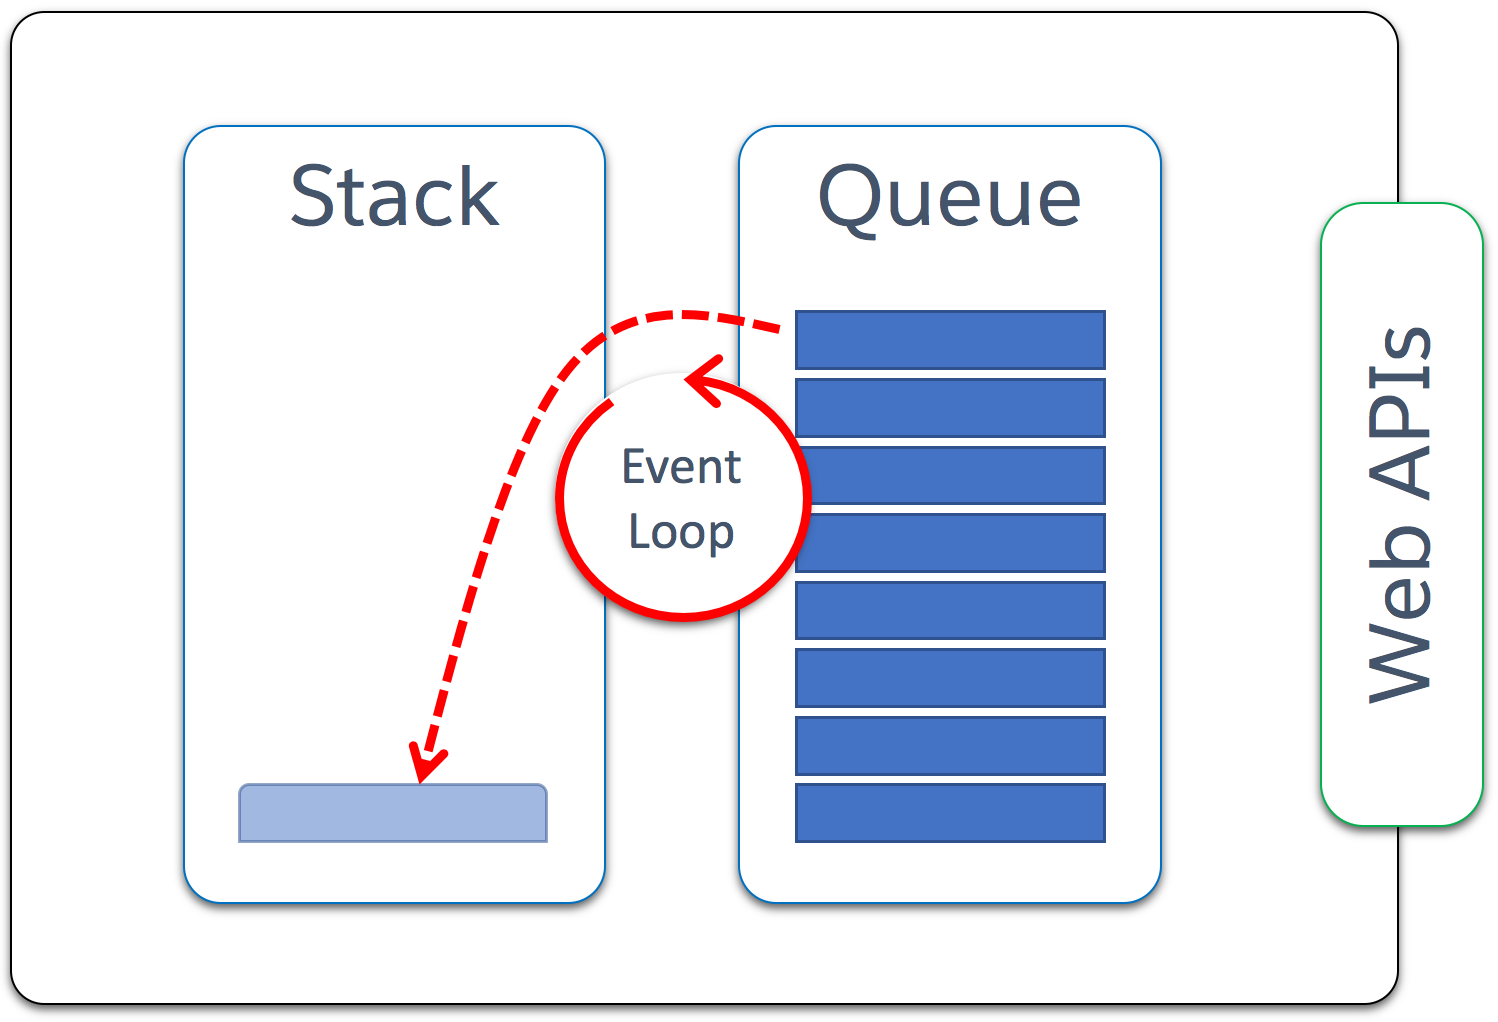 The event loop takes work from the queue and passes it to the stack